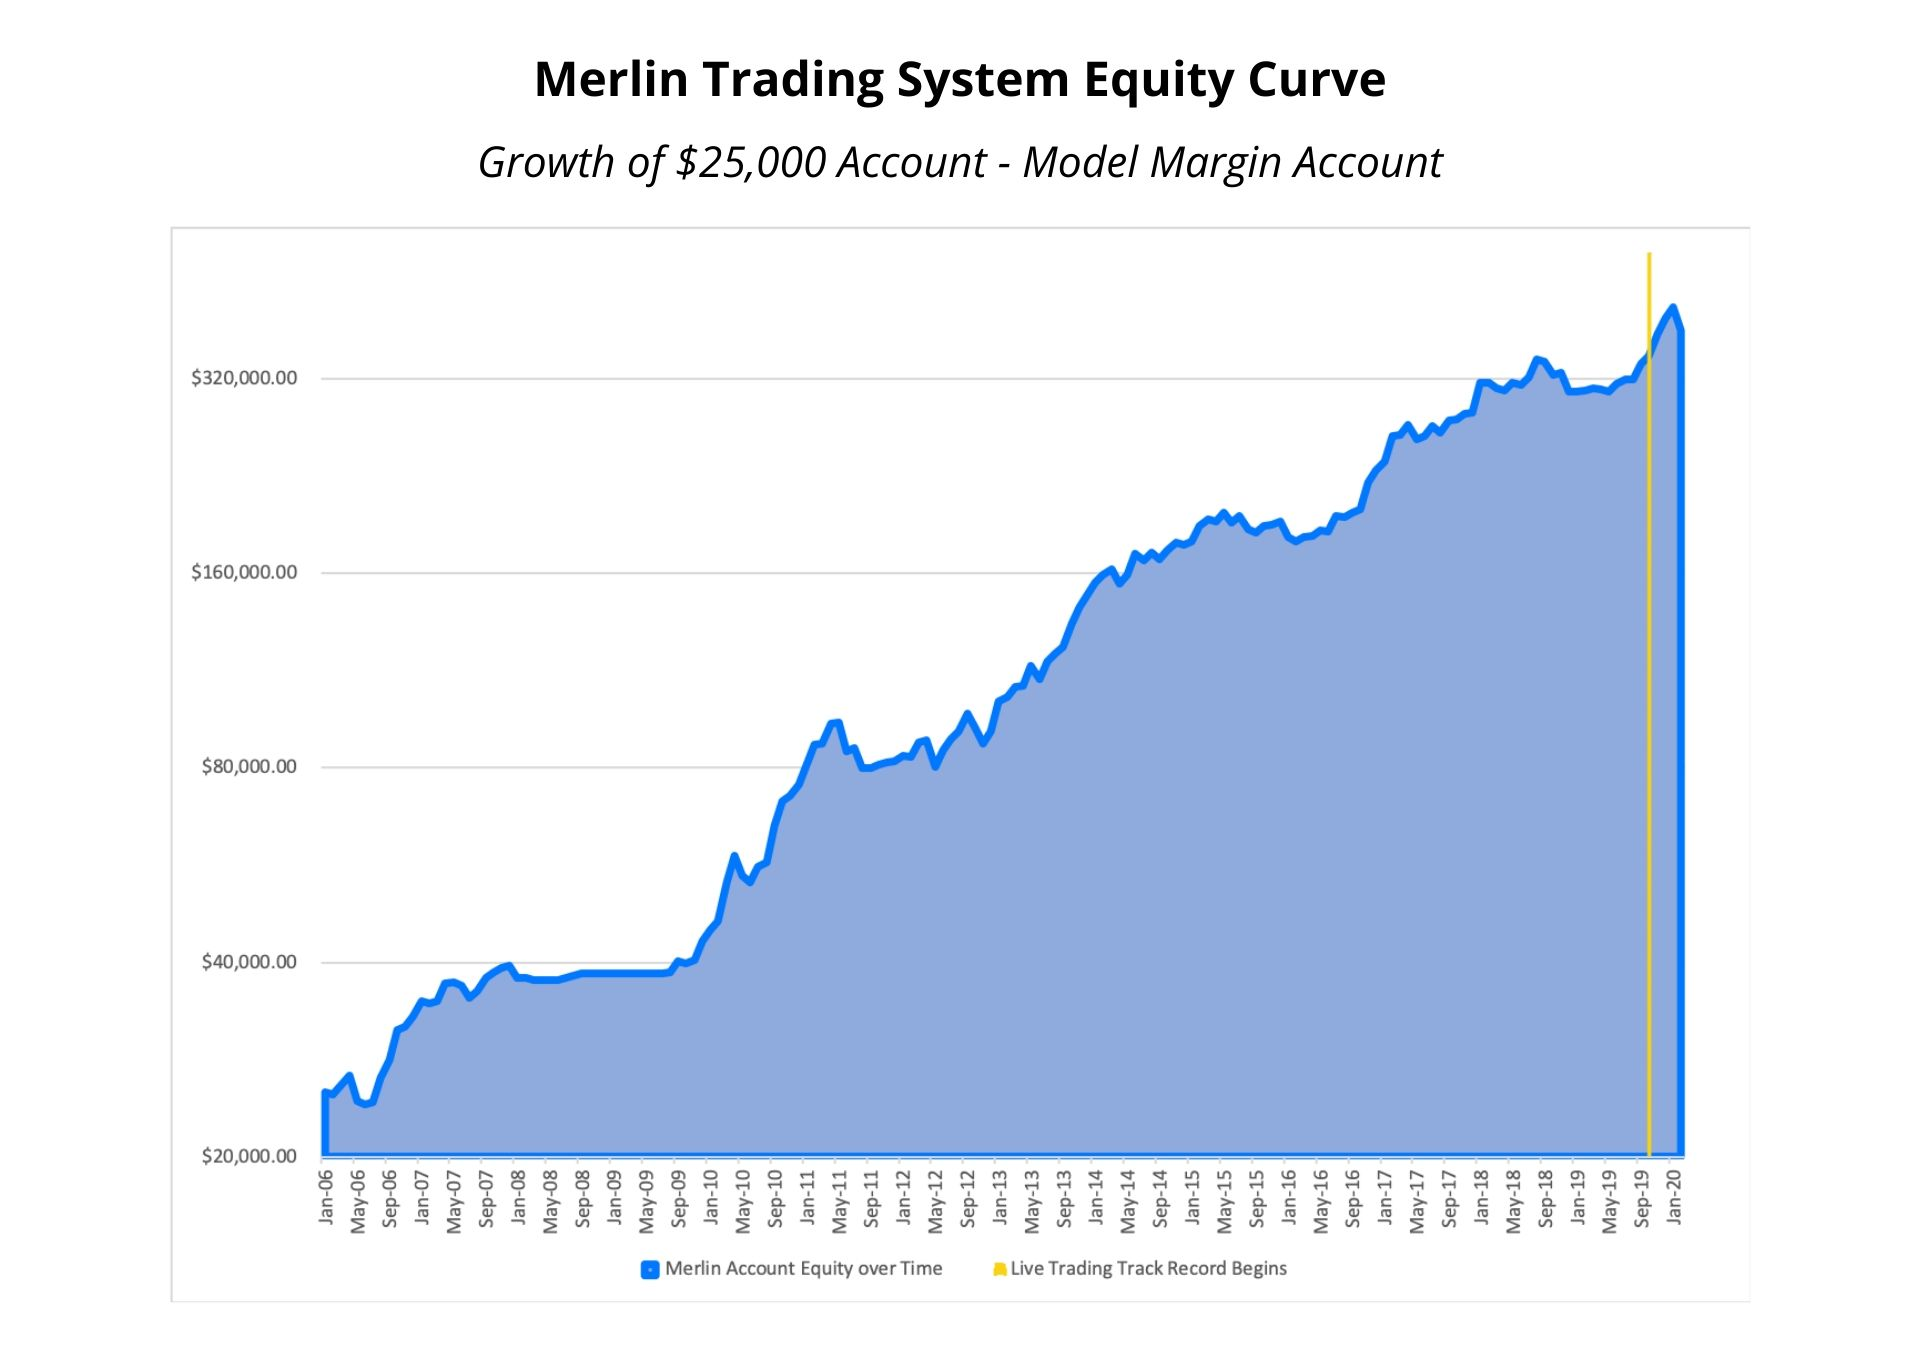 Merlin Trading System Equity Curve Through Feb 2020